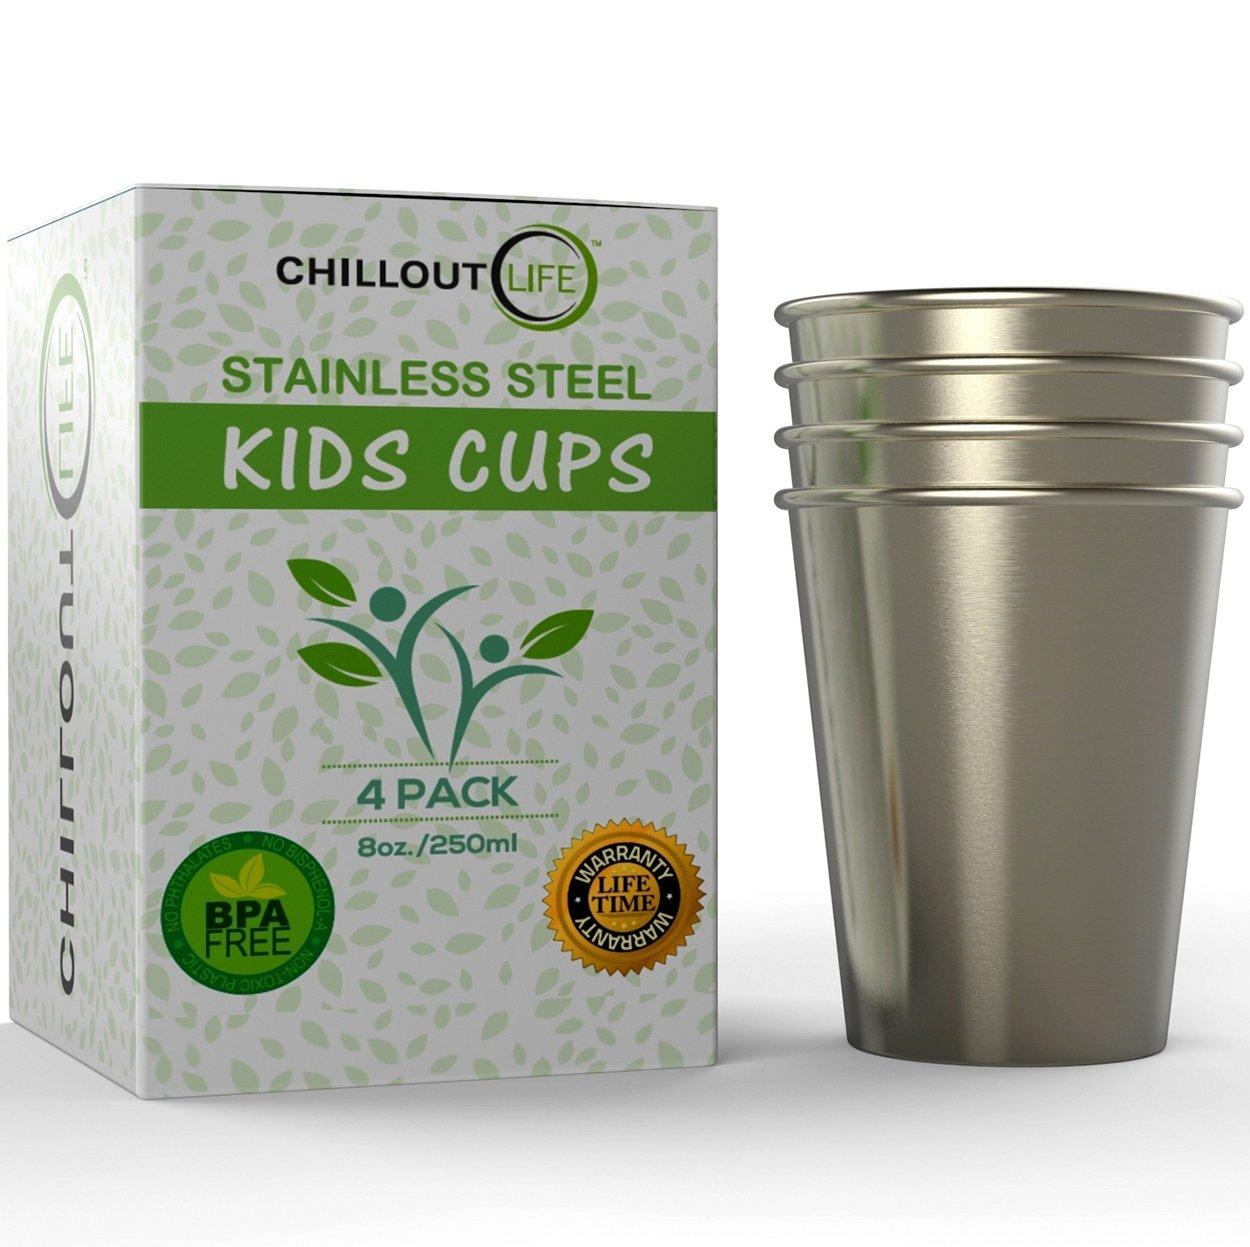 Stainless Steel Cups for Kids and Toddlers 8 oz - Stainless Steel Sippy Cups for Home & Outdoor Activities, BPA Free Healthy Unbreakable Premium Metal Drinking Glasses (4-Pack)